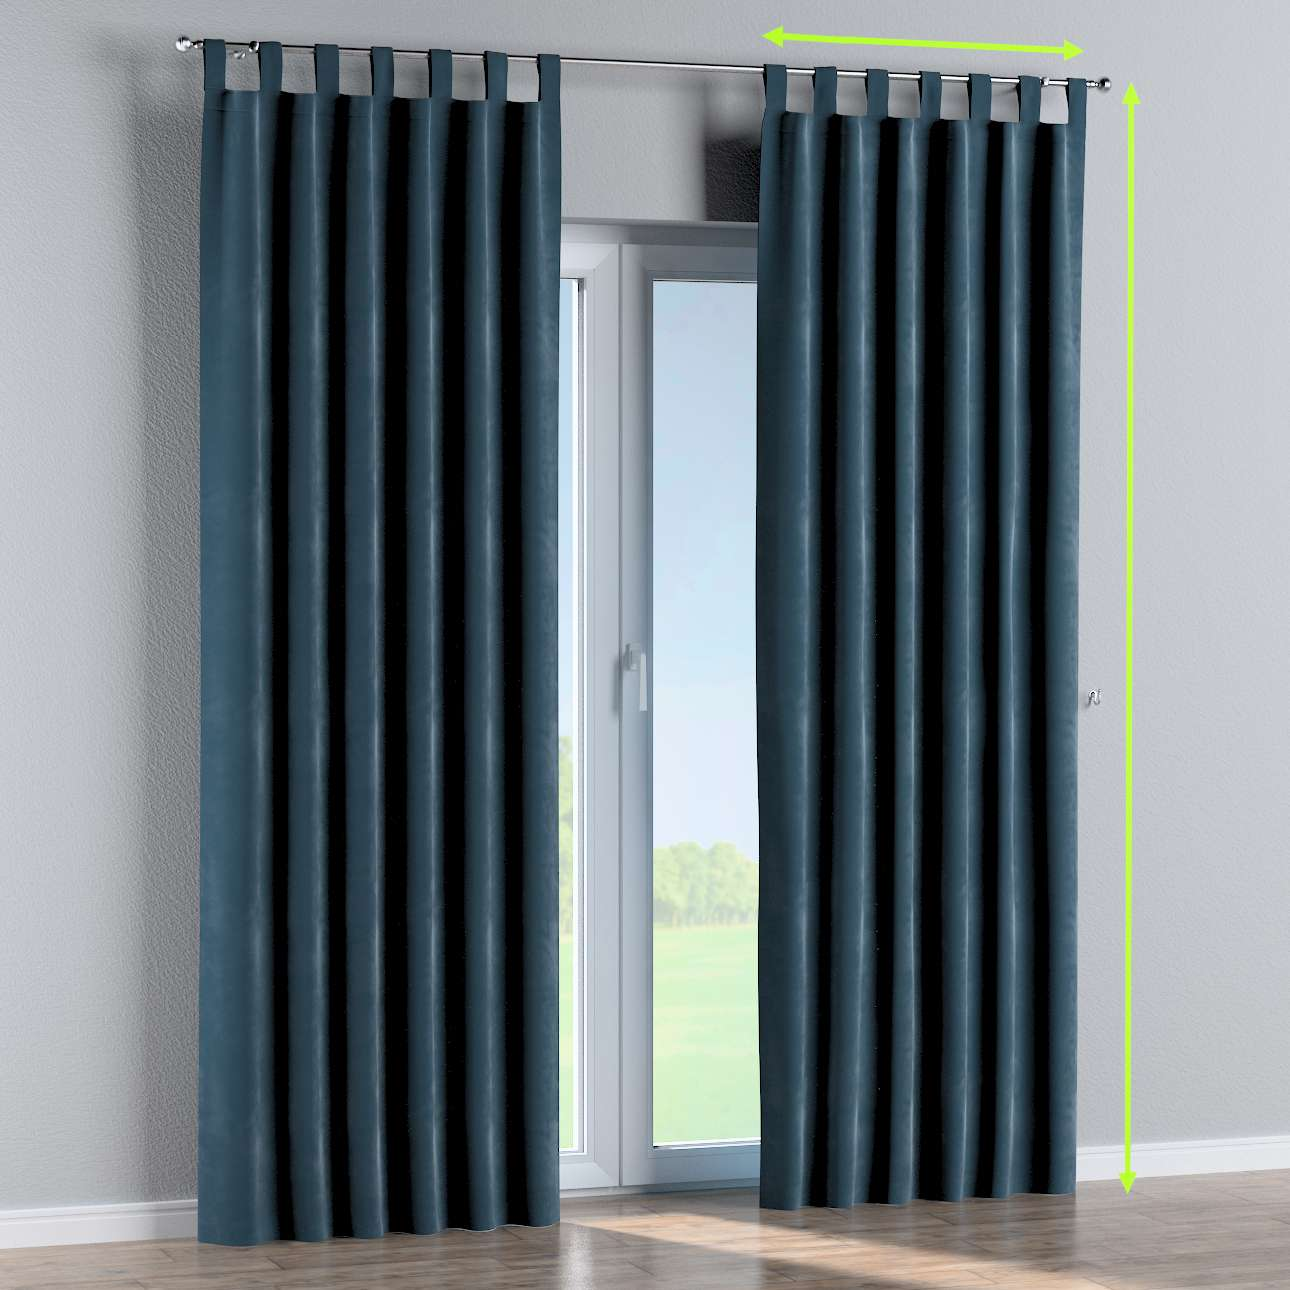 Tab top curtains in collection Velvet, fabric: 704-16